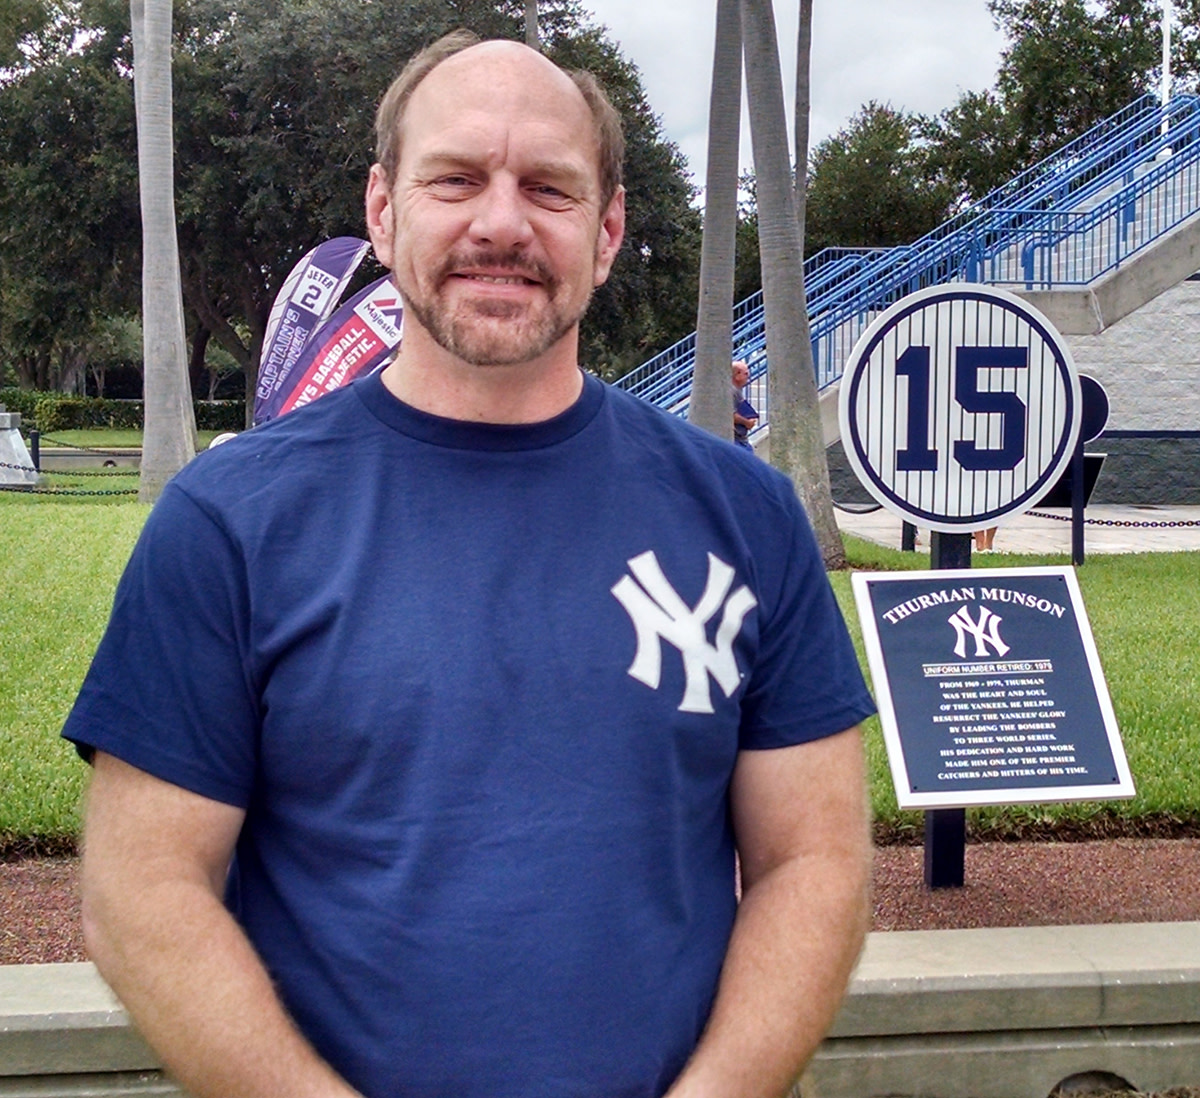 The author near a memorial plaque for Munson at Steinbrenner Field in Tampa.